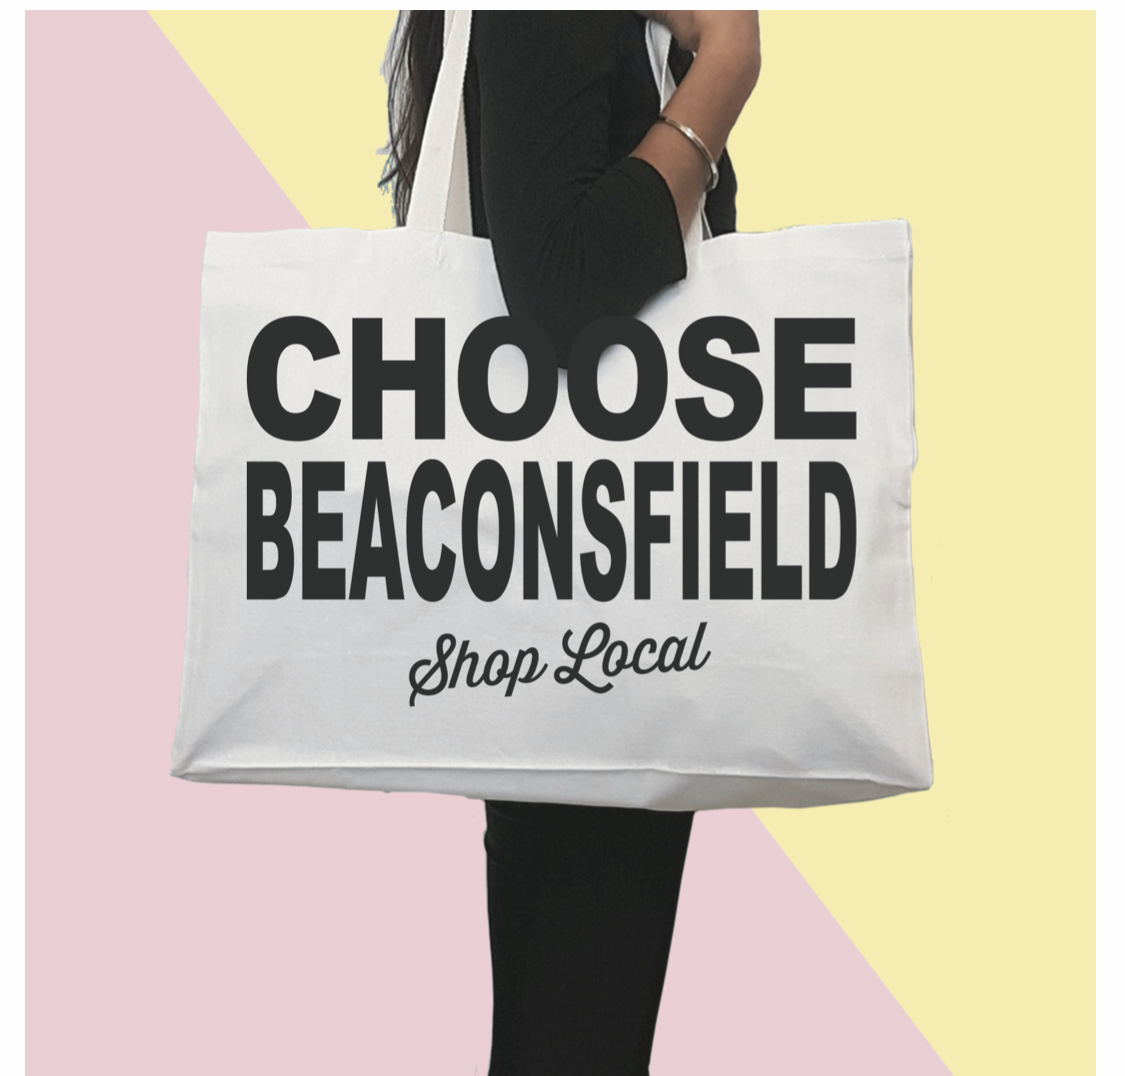 Beaconsfield Shop Local Tote Bag